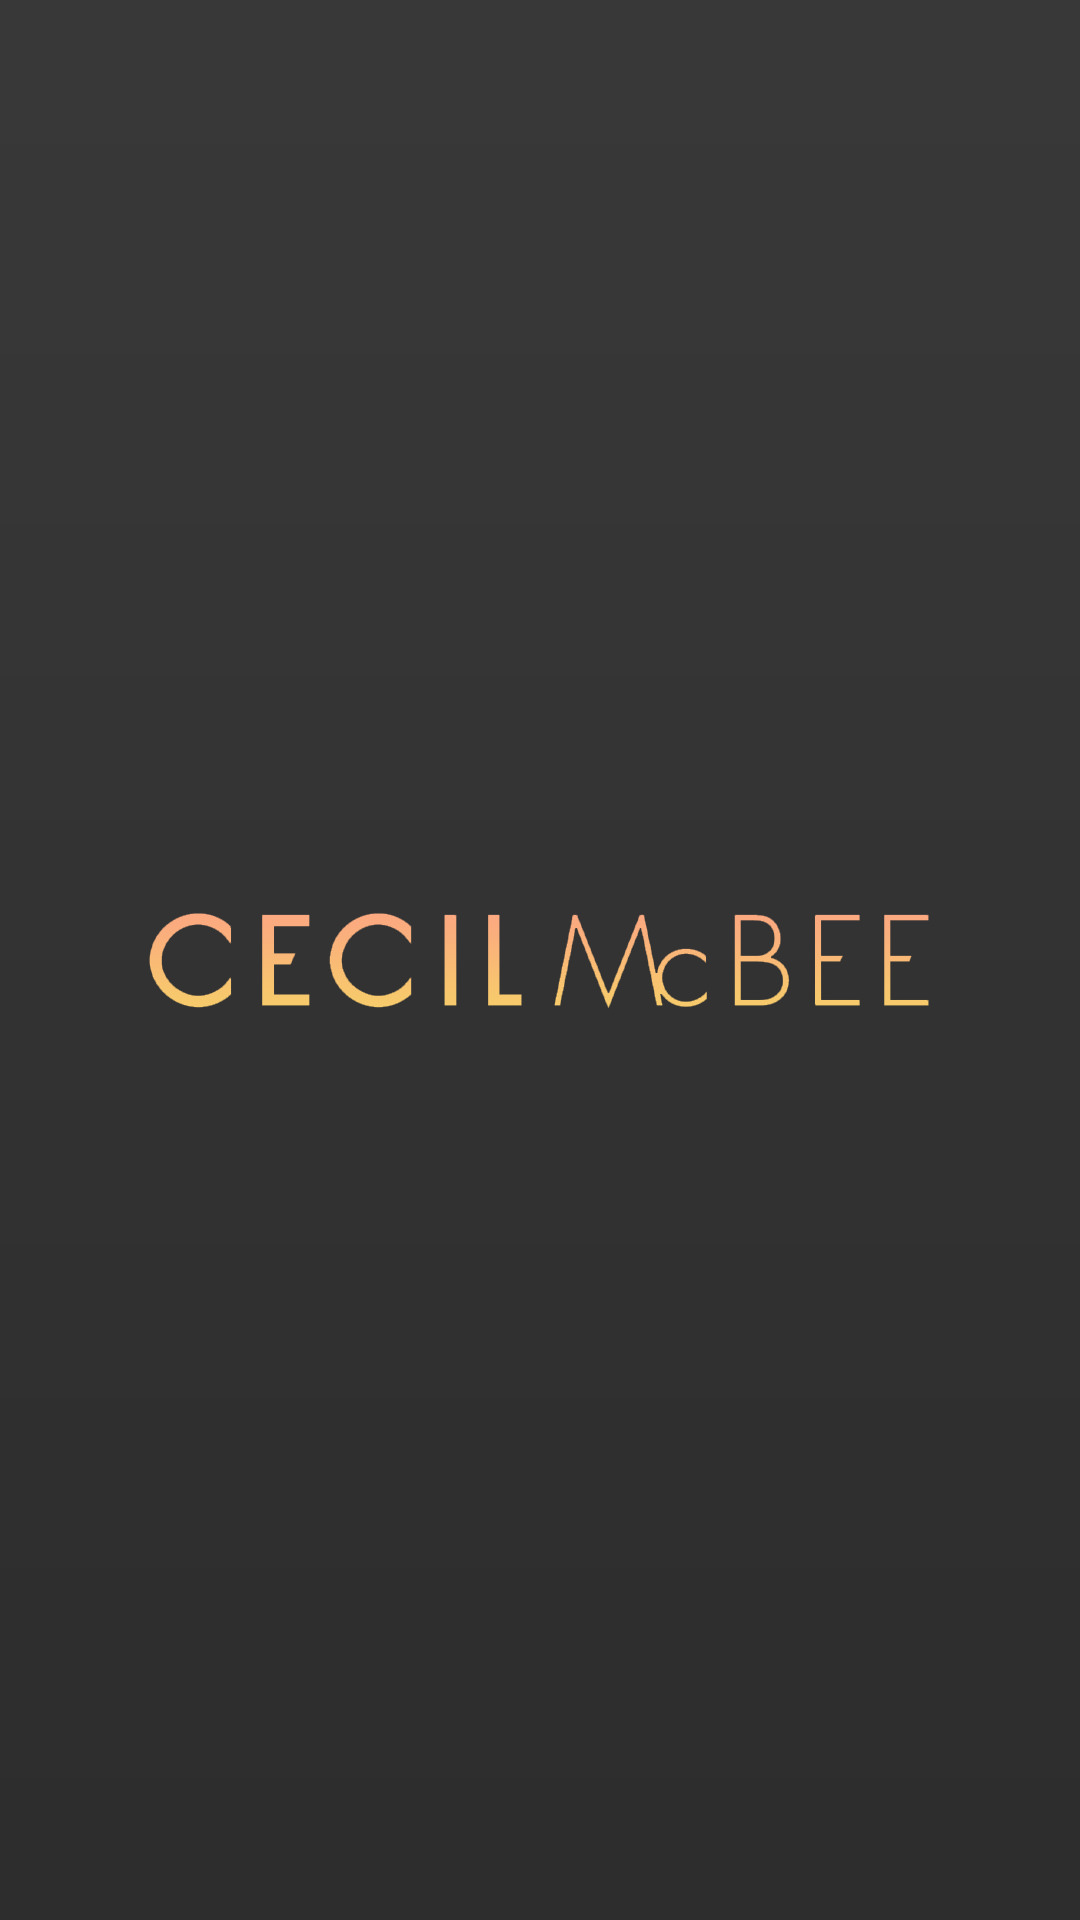 cecil00023 - セシルマクビー[CECIL McBEE]の高画質スマホ壁紙23枚 [iPhone&Androidに対応]